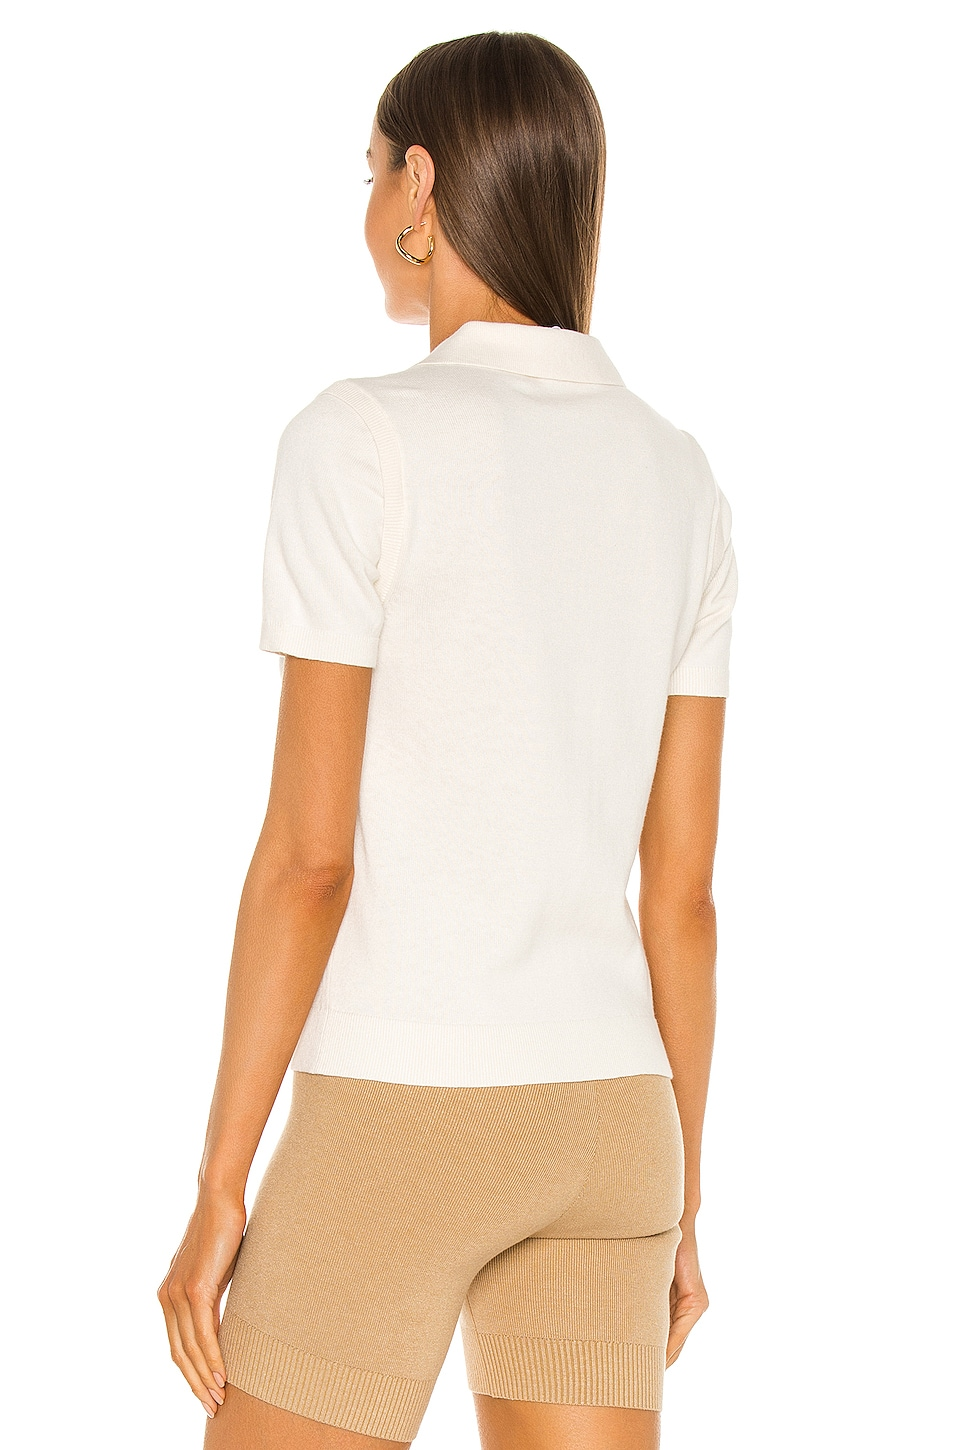 VICTOR GLEMAUD Clothing POLO VEST TOP